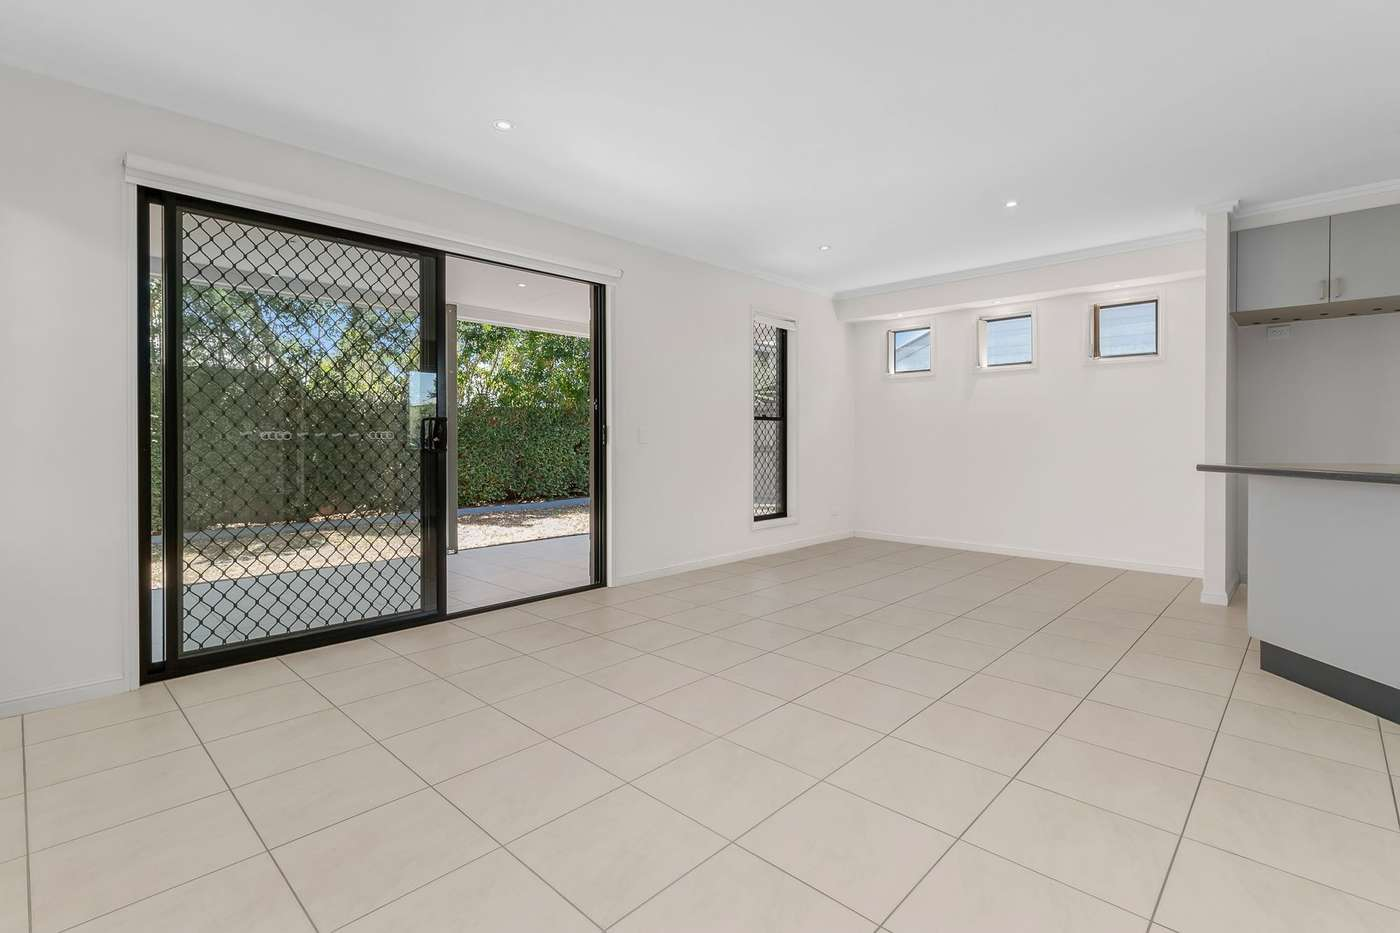 Main view of Homely townhouse listing, 4/7 Franklin Street, Nundah, QLD 4012